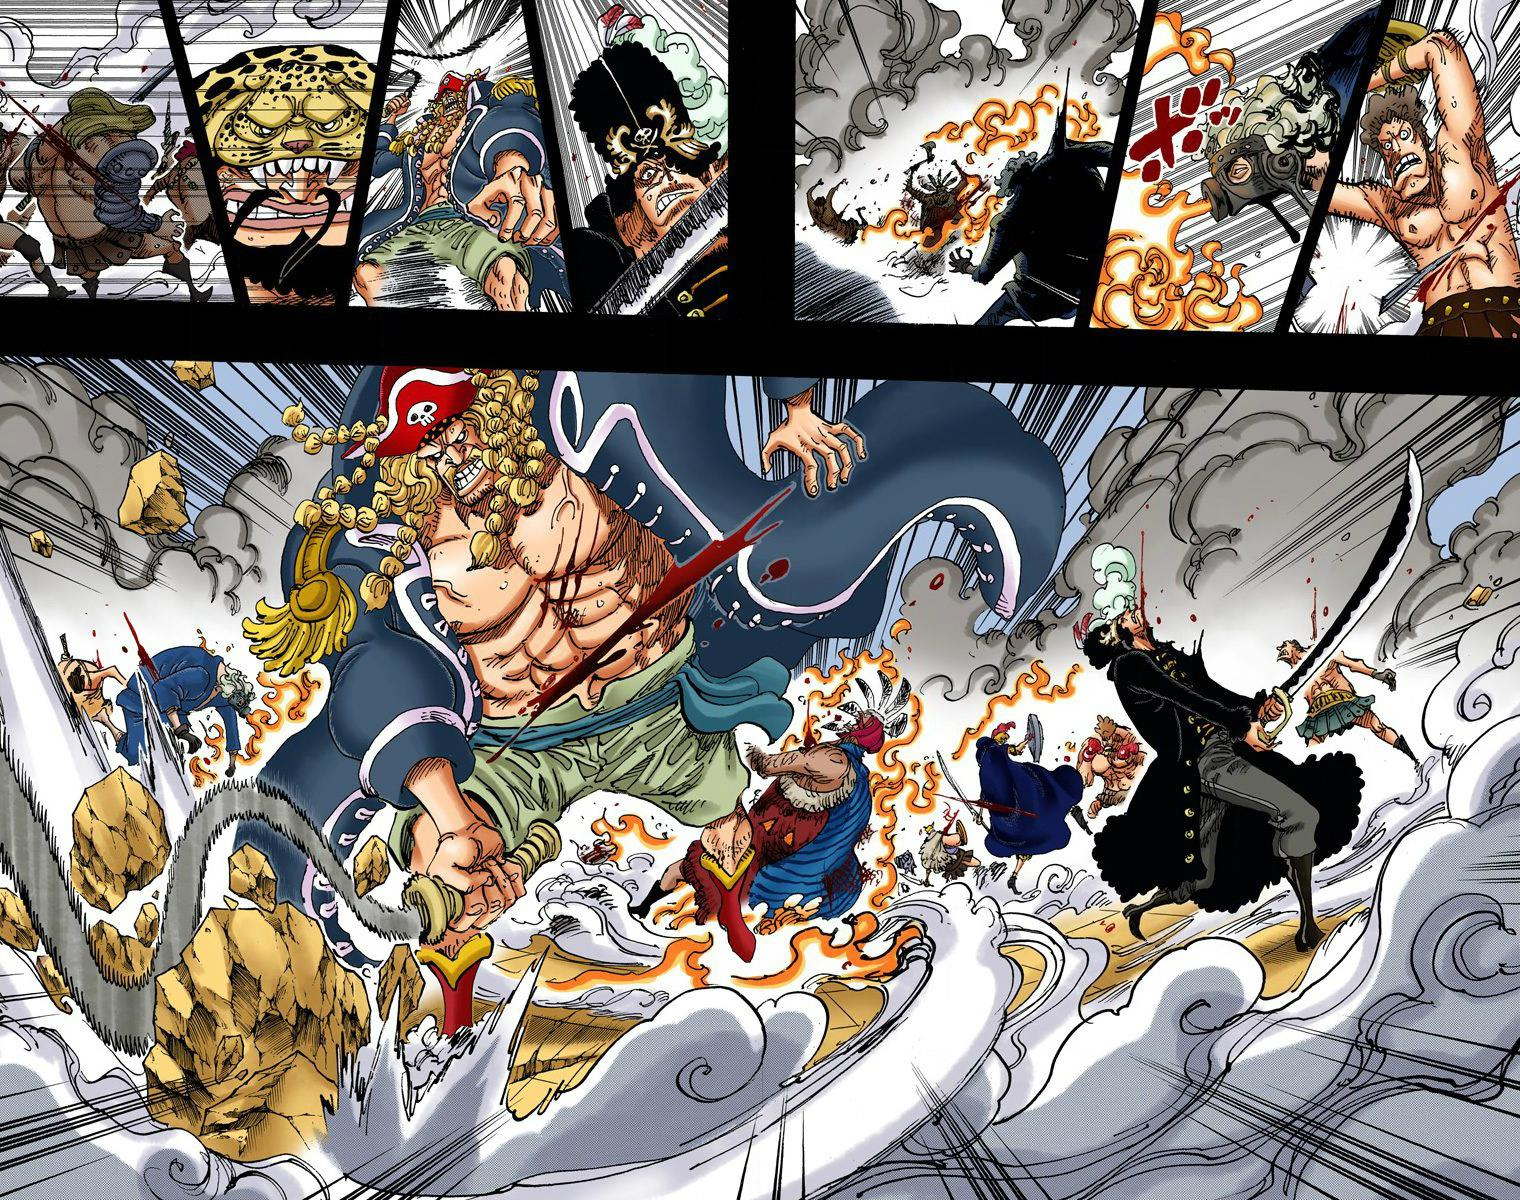 One Piece, Chapter 734 - Page 2 of 2 - One Piece Manga ...